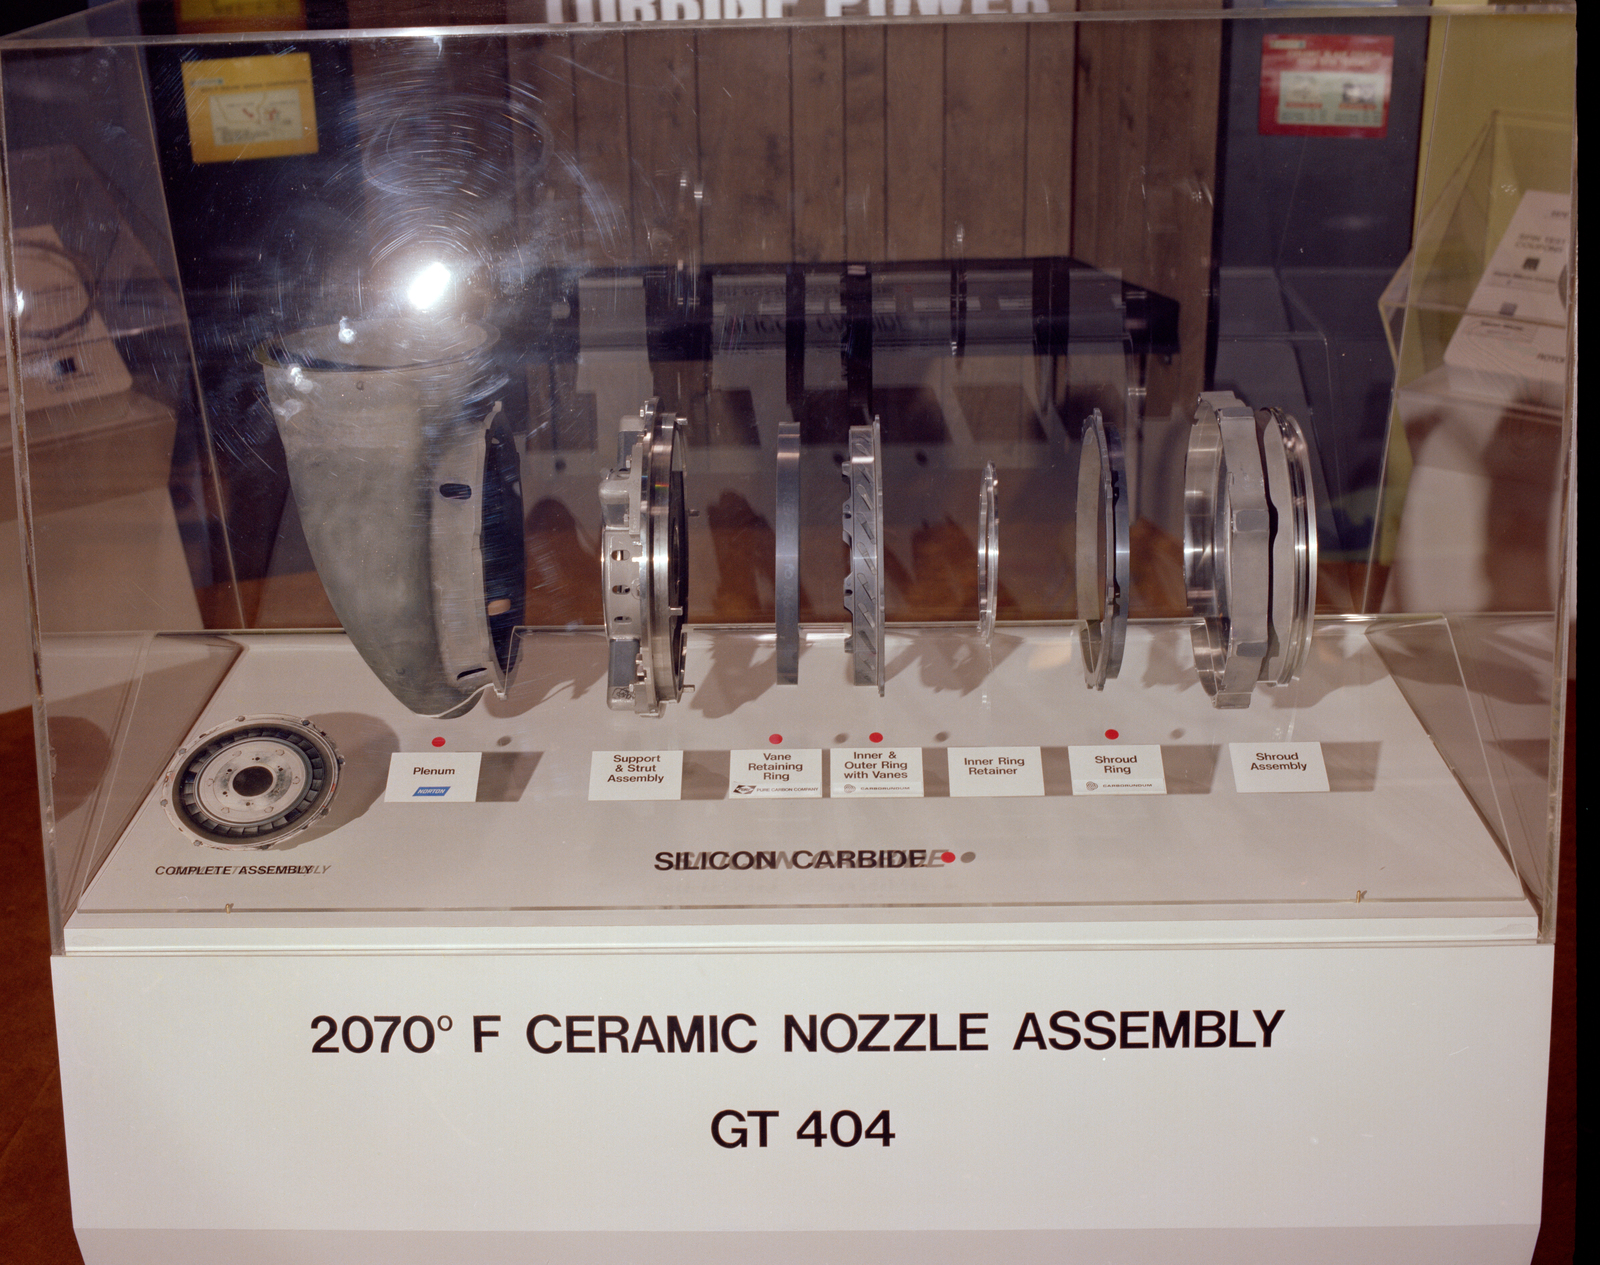 2700 DEGREES CERAMIC NOZZLE ASSEMBLY